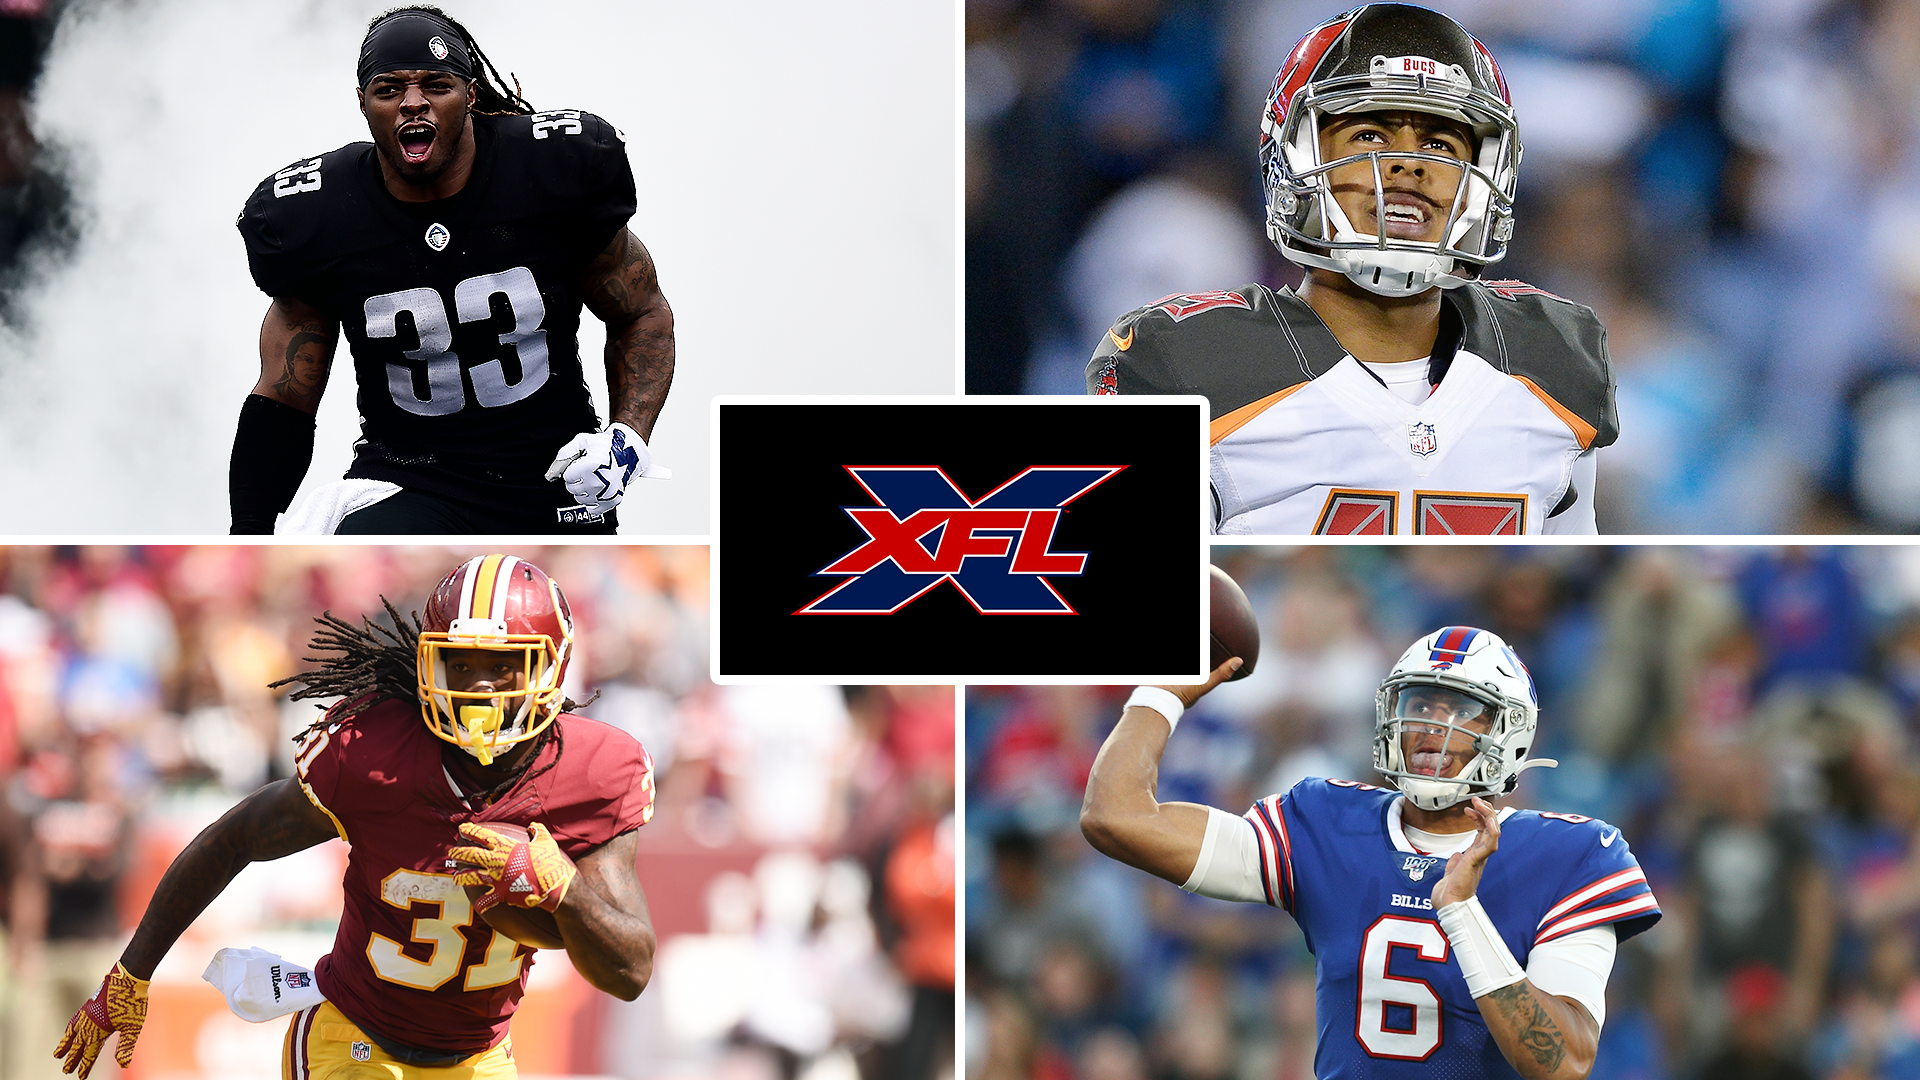 XFL Draft pool 2019: A list of top QBs, prospects & notable players for new football league